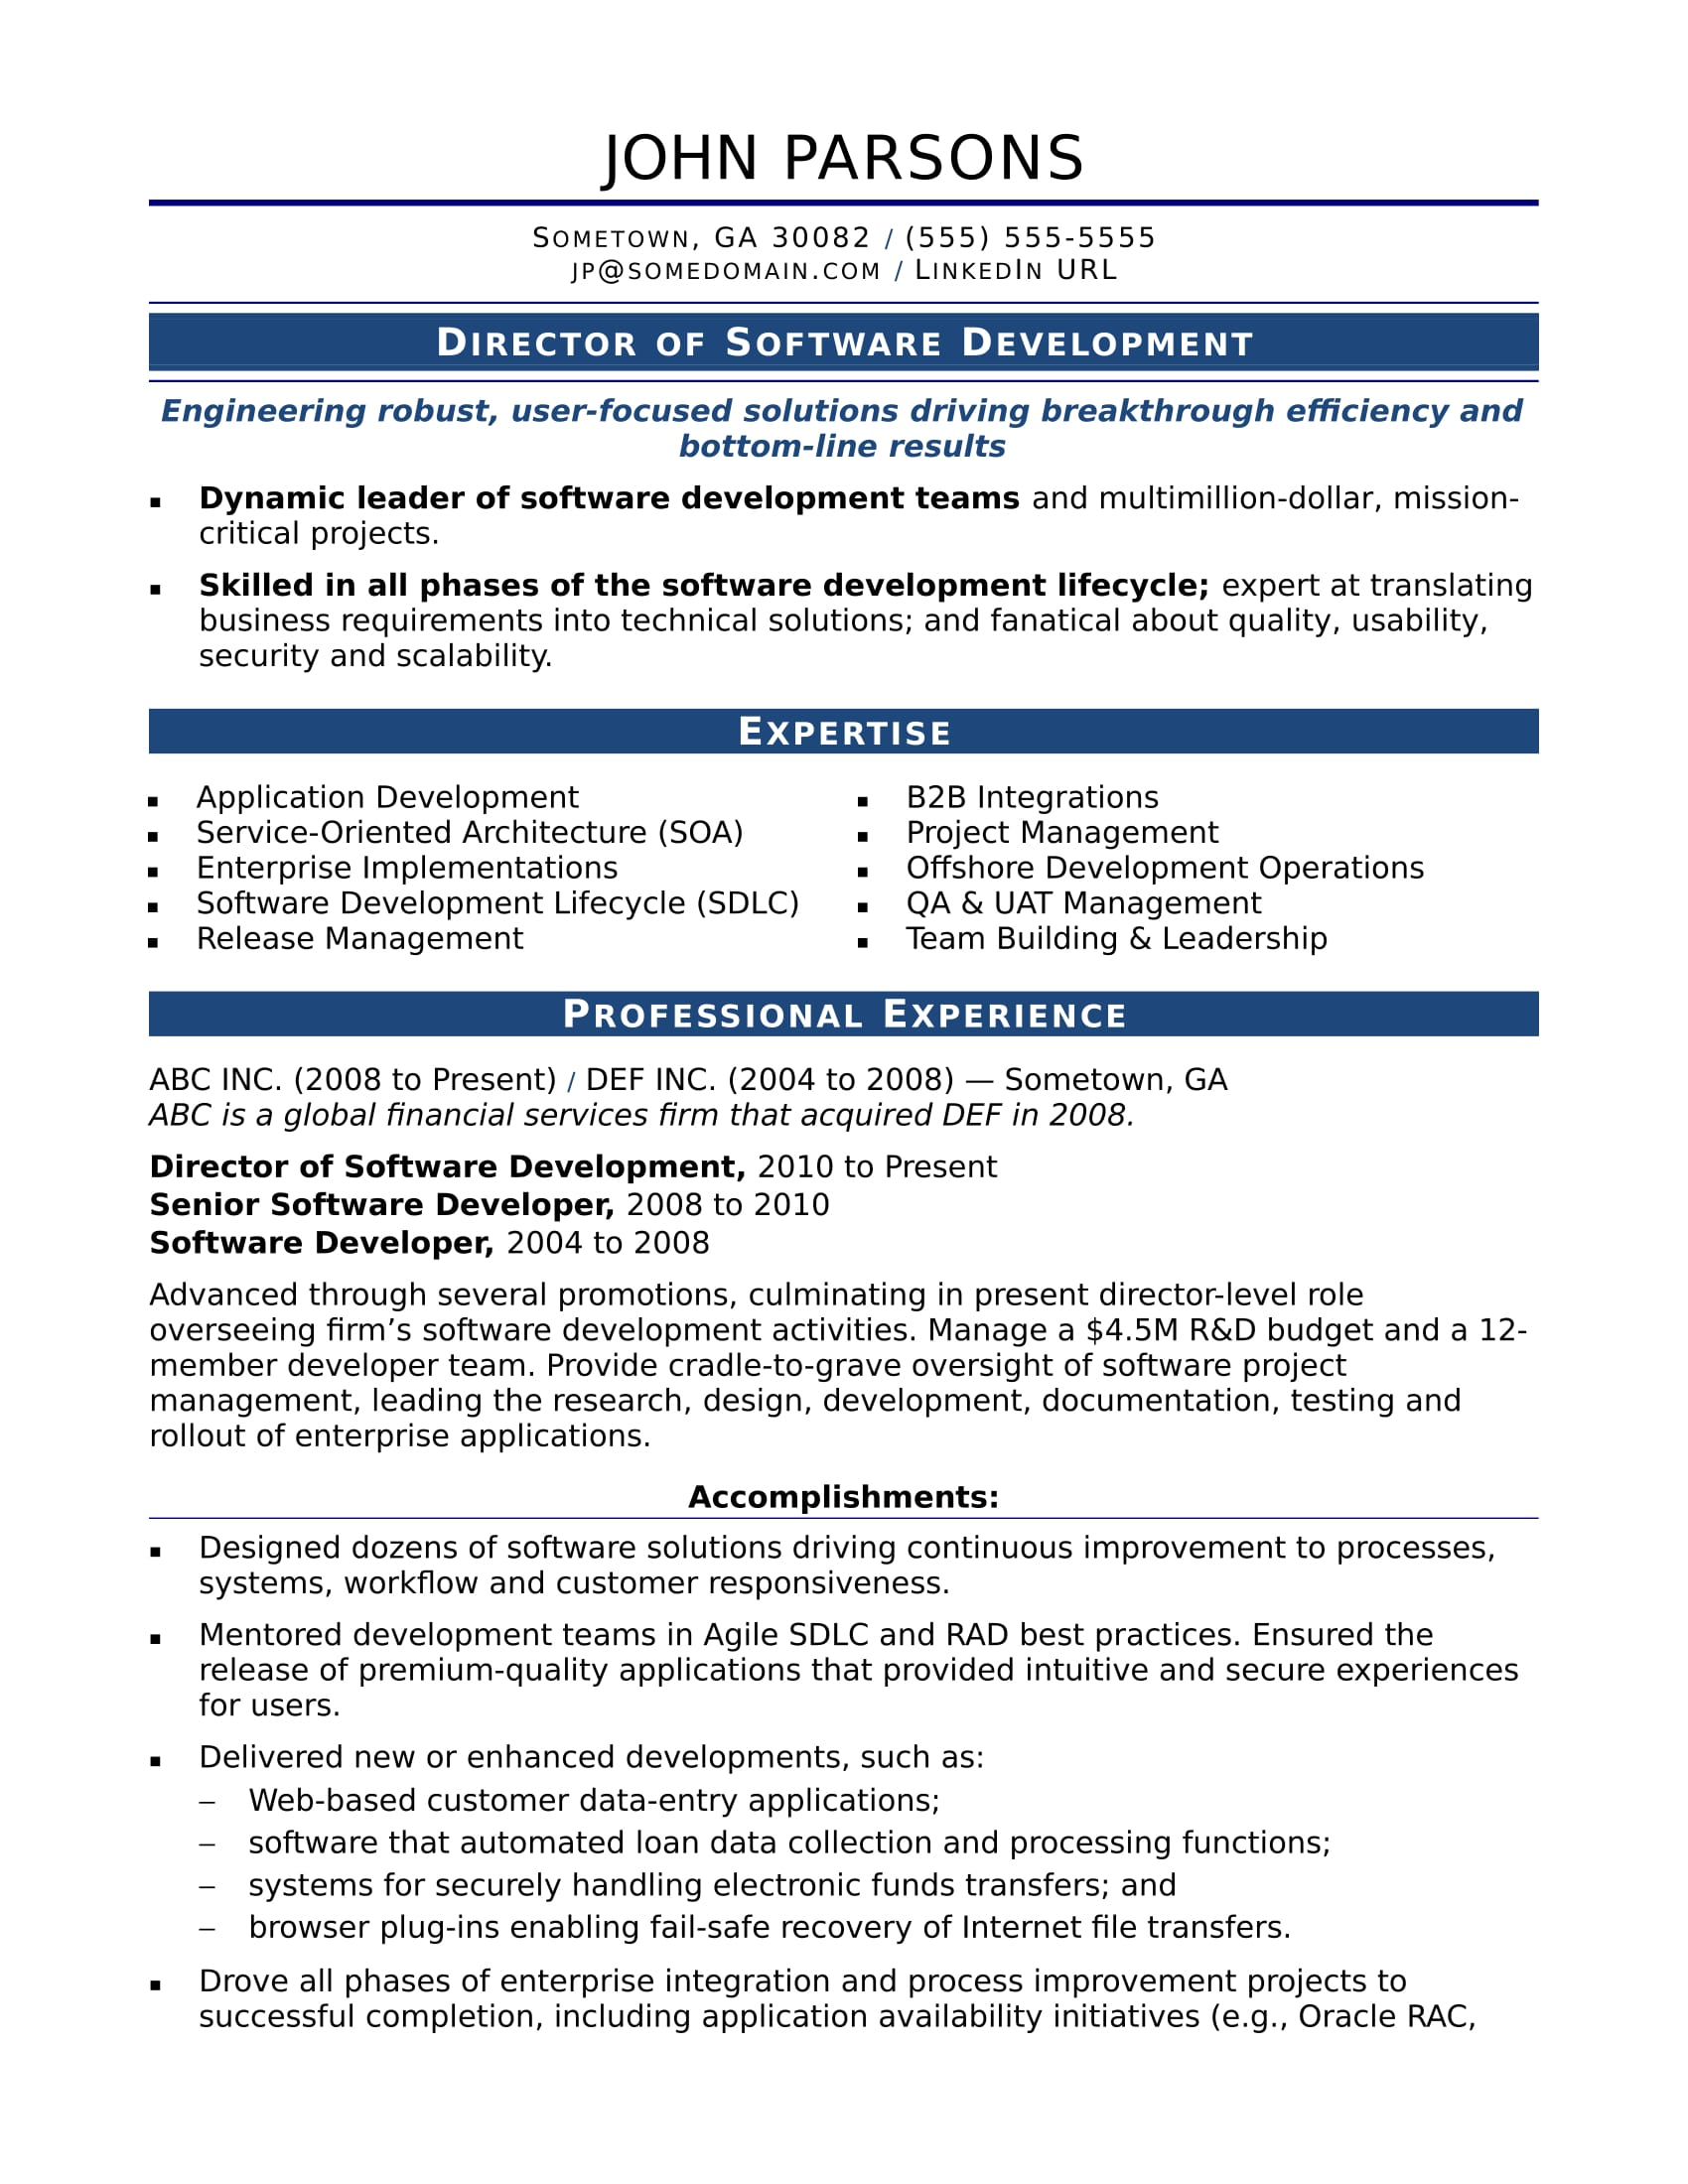 sample resume for an experienced it developer monster work experience examples designtaxi Resume Resume Work Experience Examples